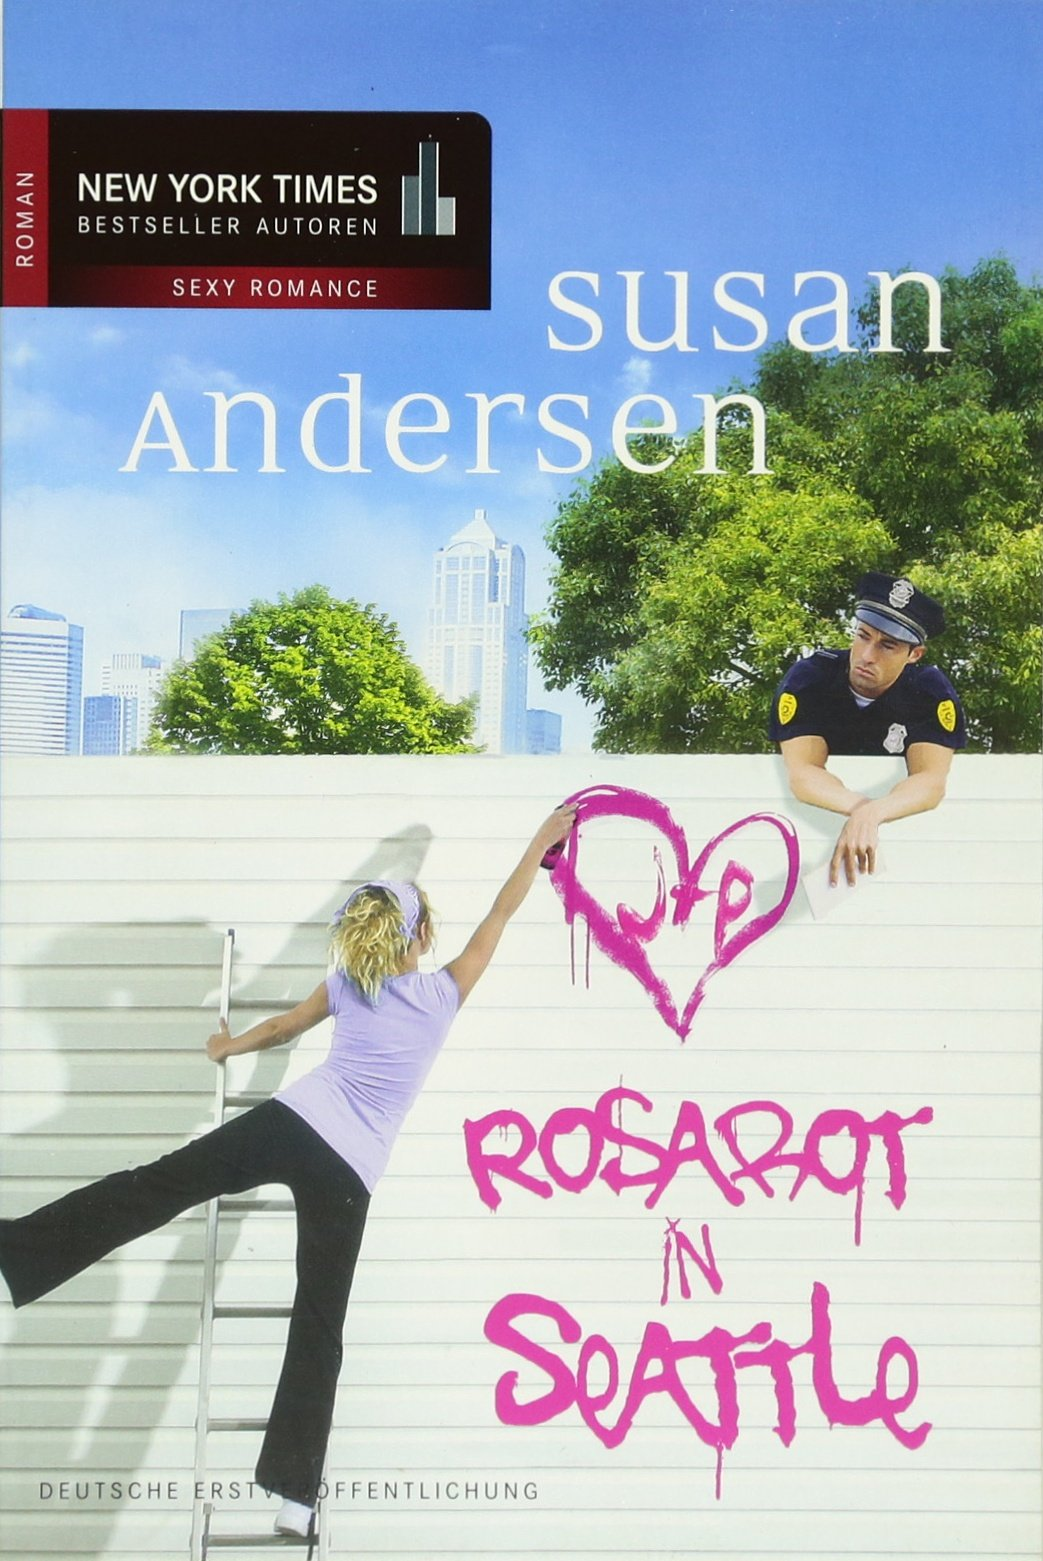 Rosarot in Seattle New York Times Bestseller Autoren: Romance, Band ...